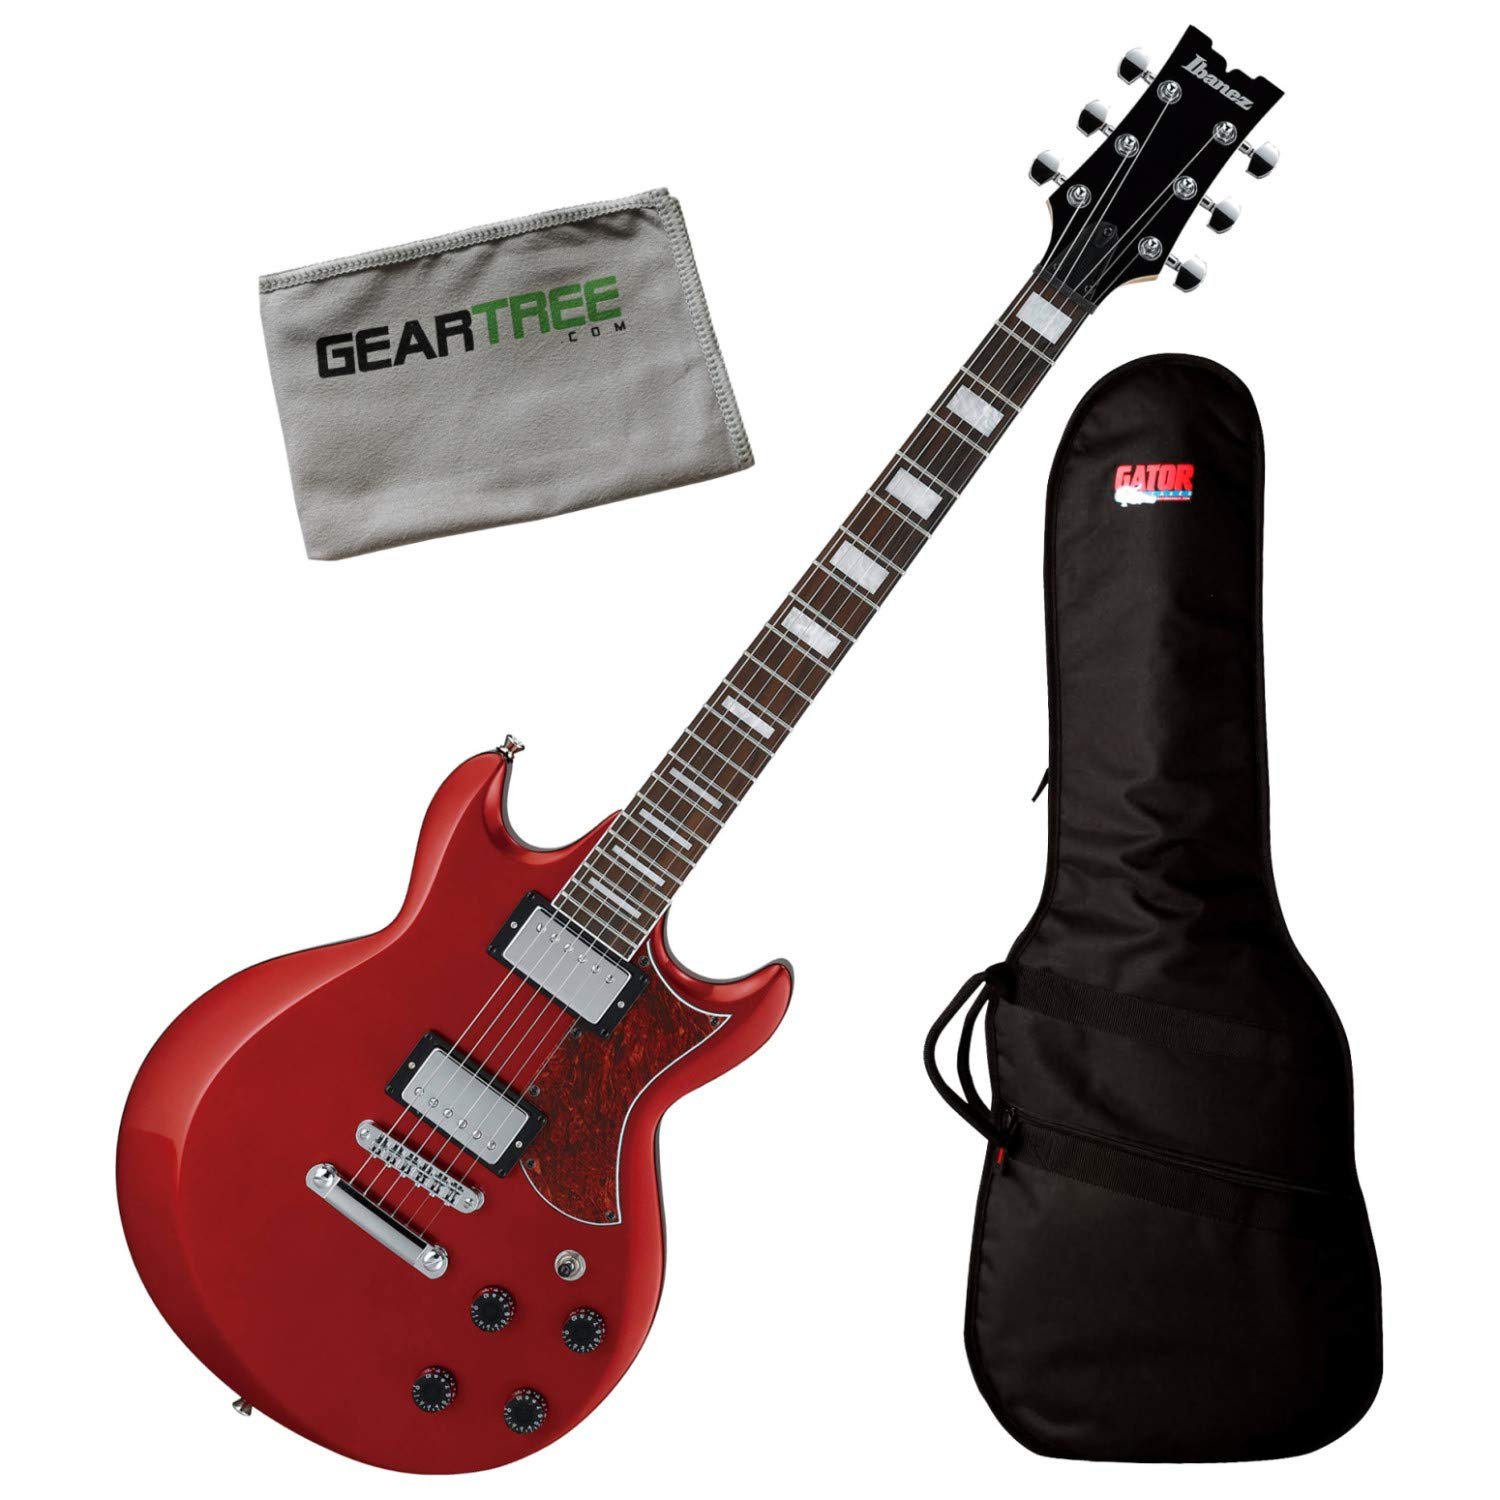 Cheap Ibanez AX120 CA Candy Apple AX Standard Electric Guitar Bundle w/Bag and Cloth Black Friday & Cyber Monday 2019